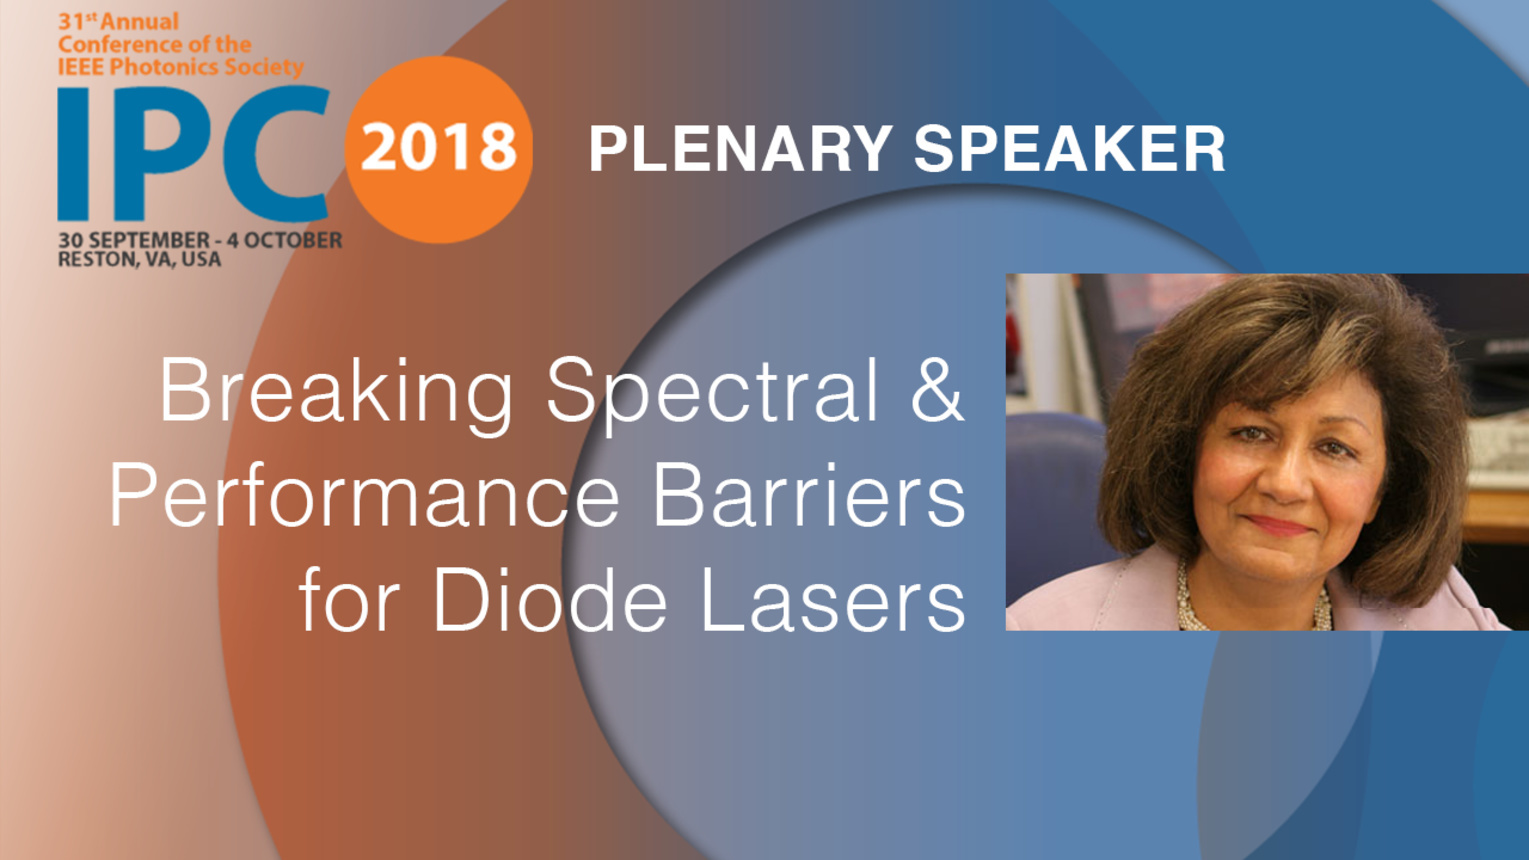 Breaking Spectral and Performance Barriers for Diode Lasers - Plenary Speaker, Manijeh Razeghi - IPC 2018